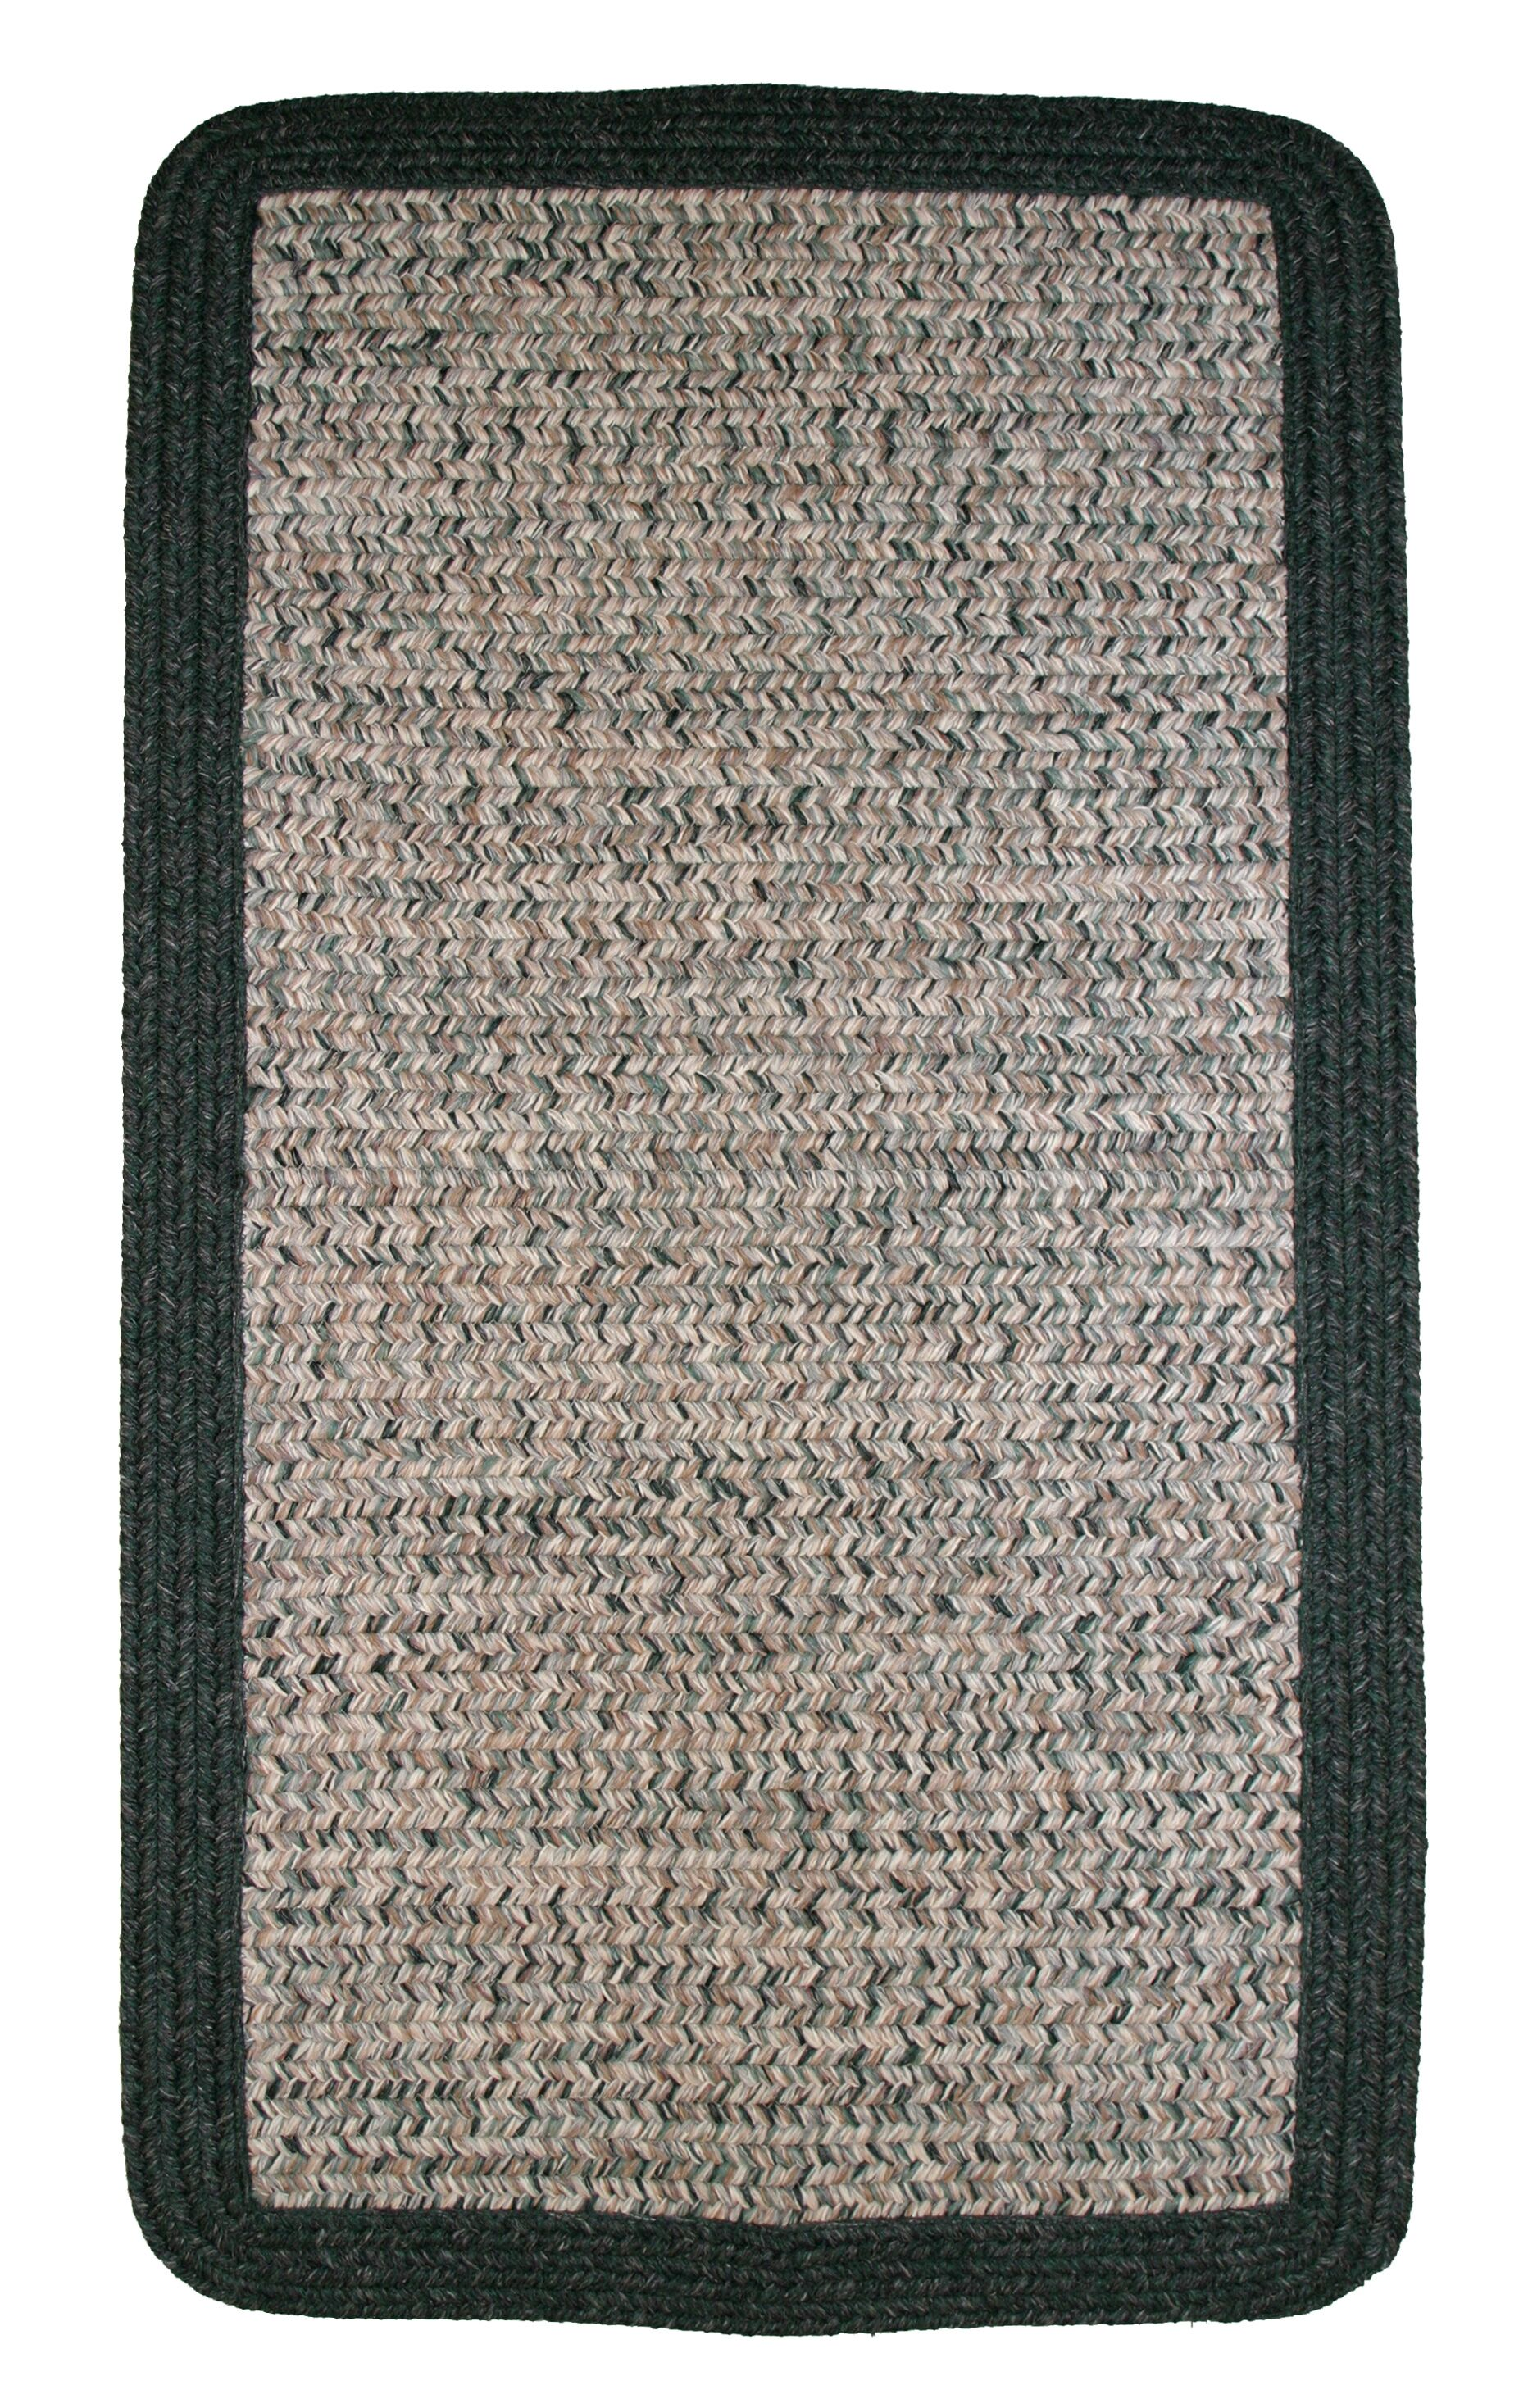 Town Crier Green Heather with Green Solids Indoor/Outdoor Rug Rug Size: Rectangle 9' x 12'